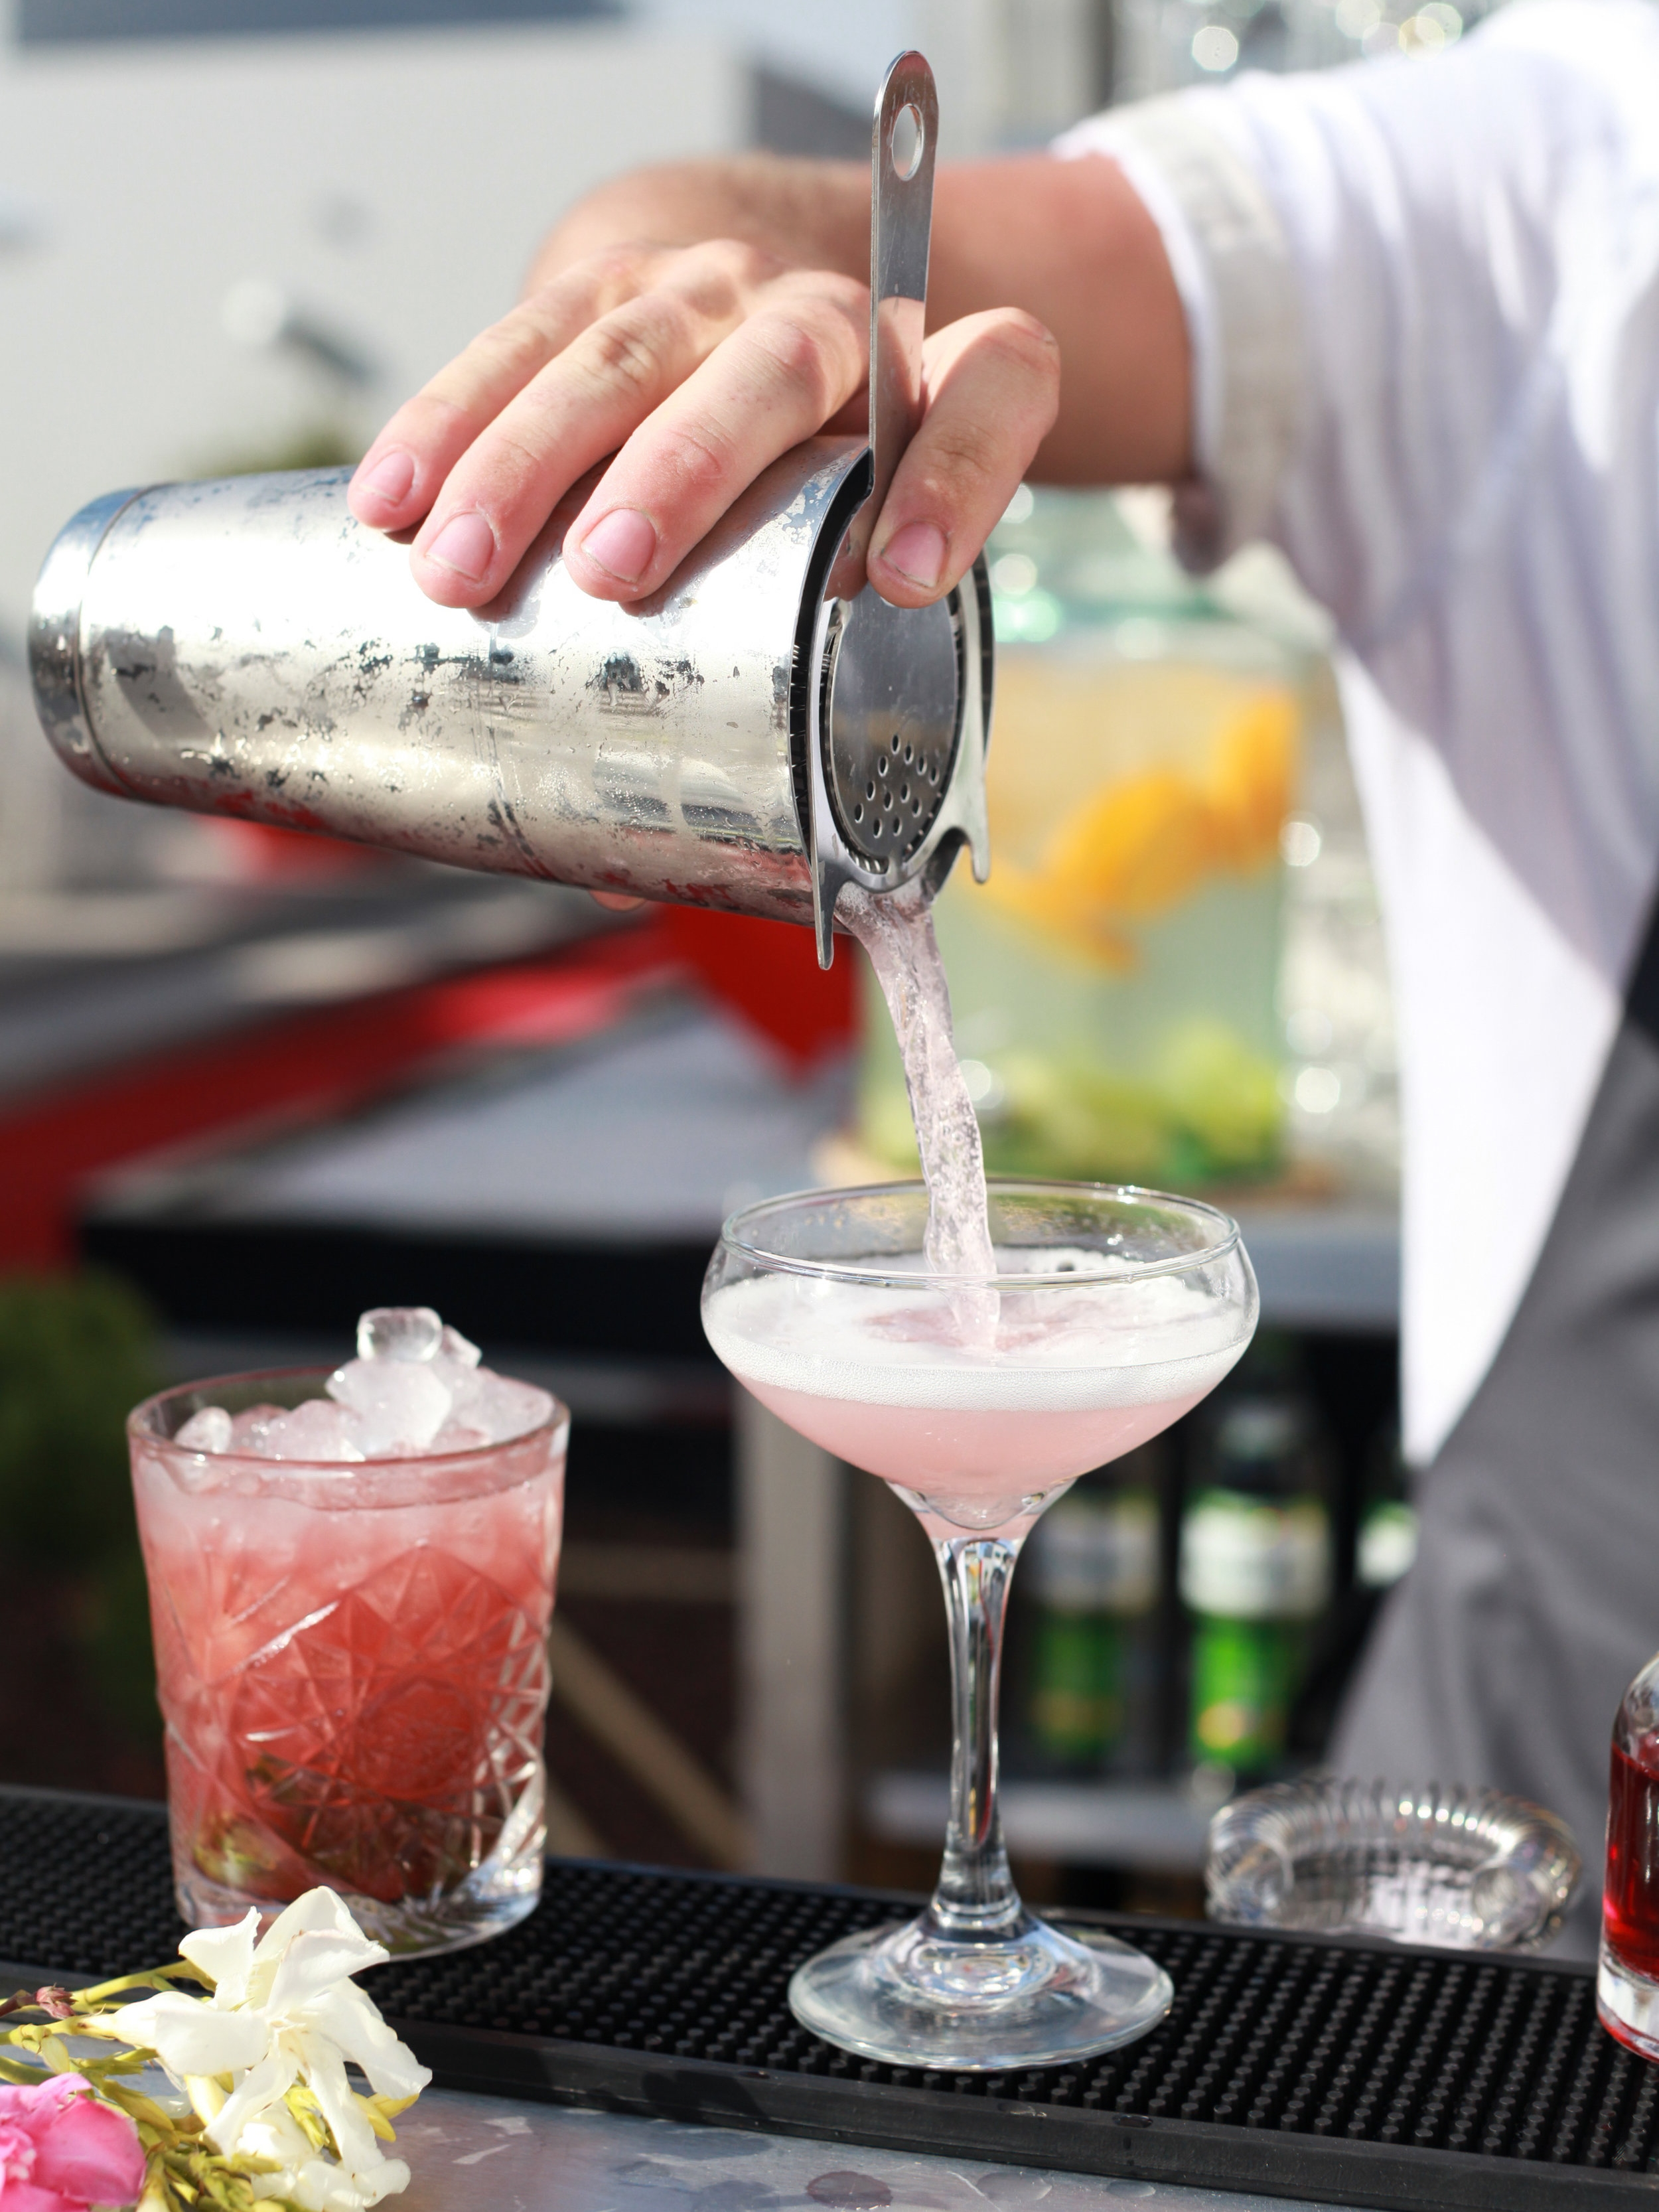 Bar Hire - We provide mobile bars,mixologists, refrigeration, garnishes, glassware and more